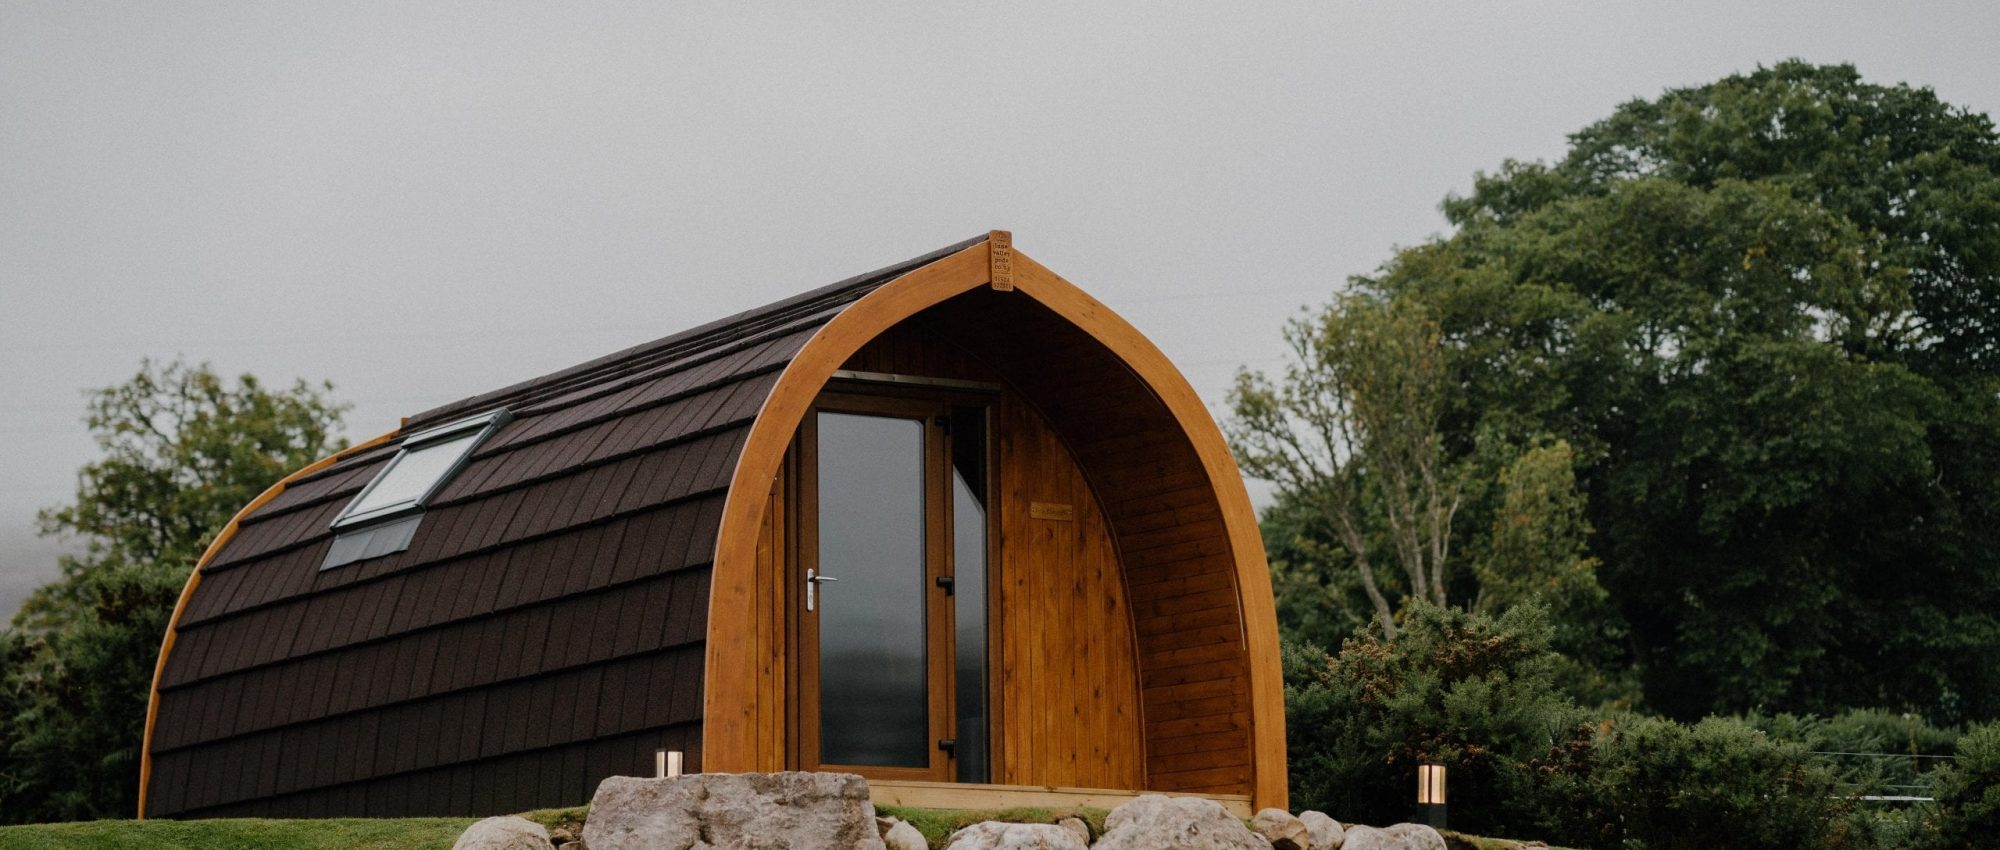 overcast day with glamping pod in foreground